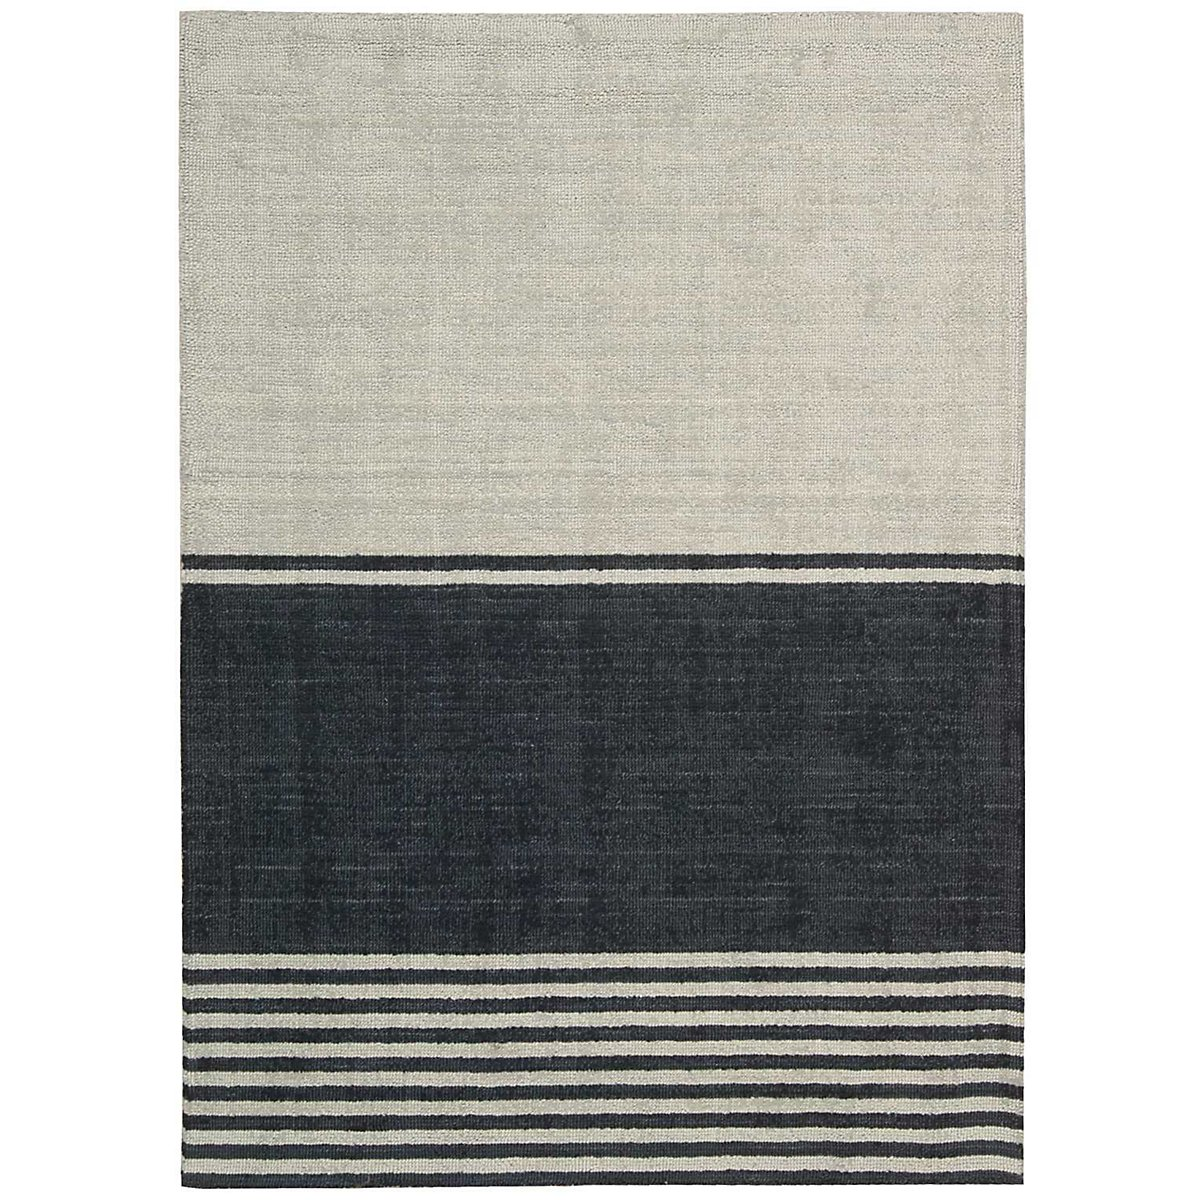 Tundra Dark Blue 5X7 Area Rug